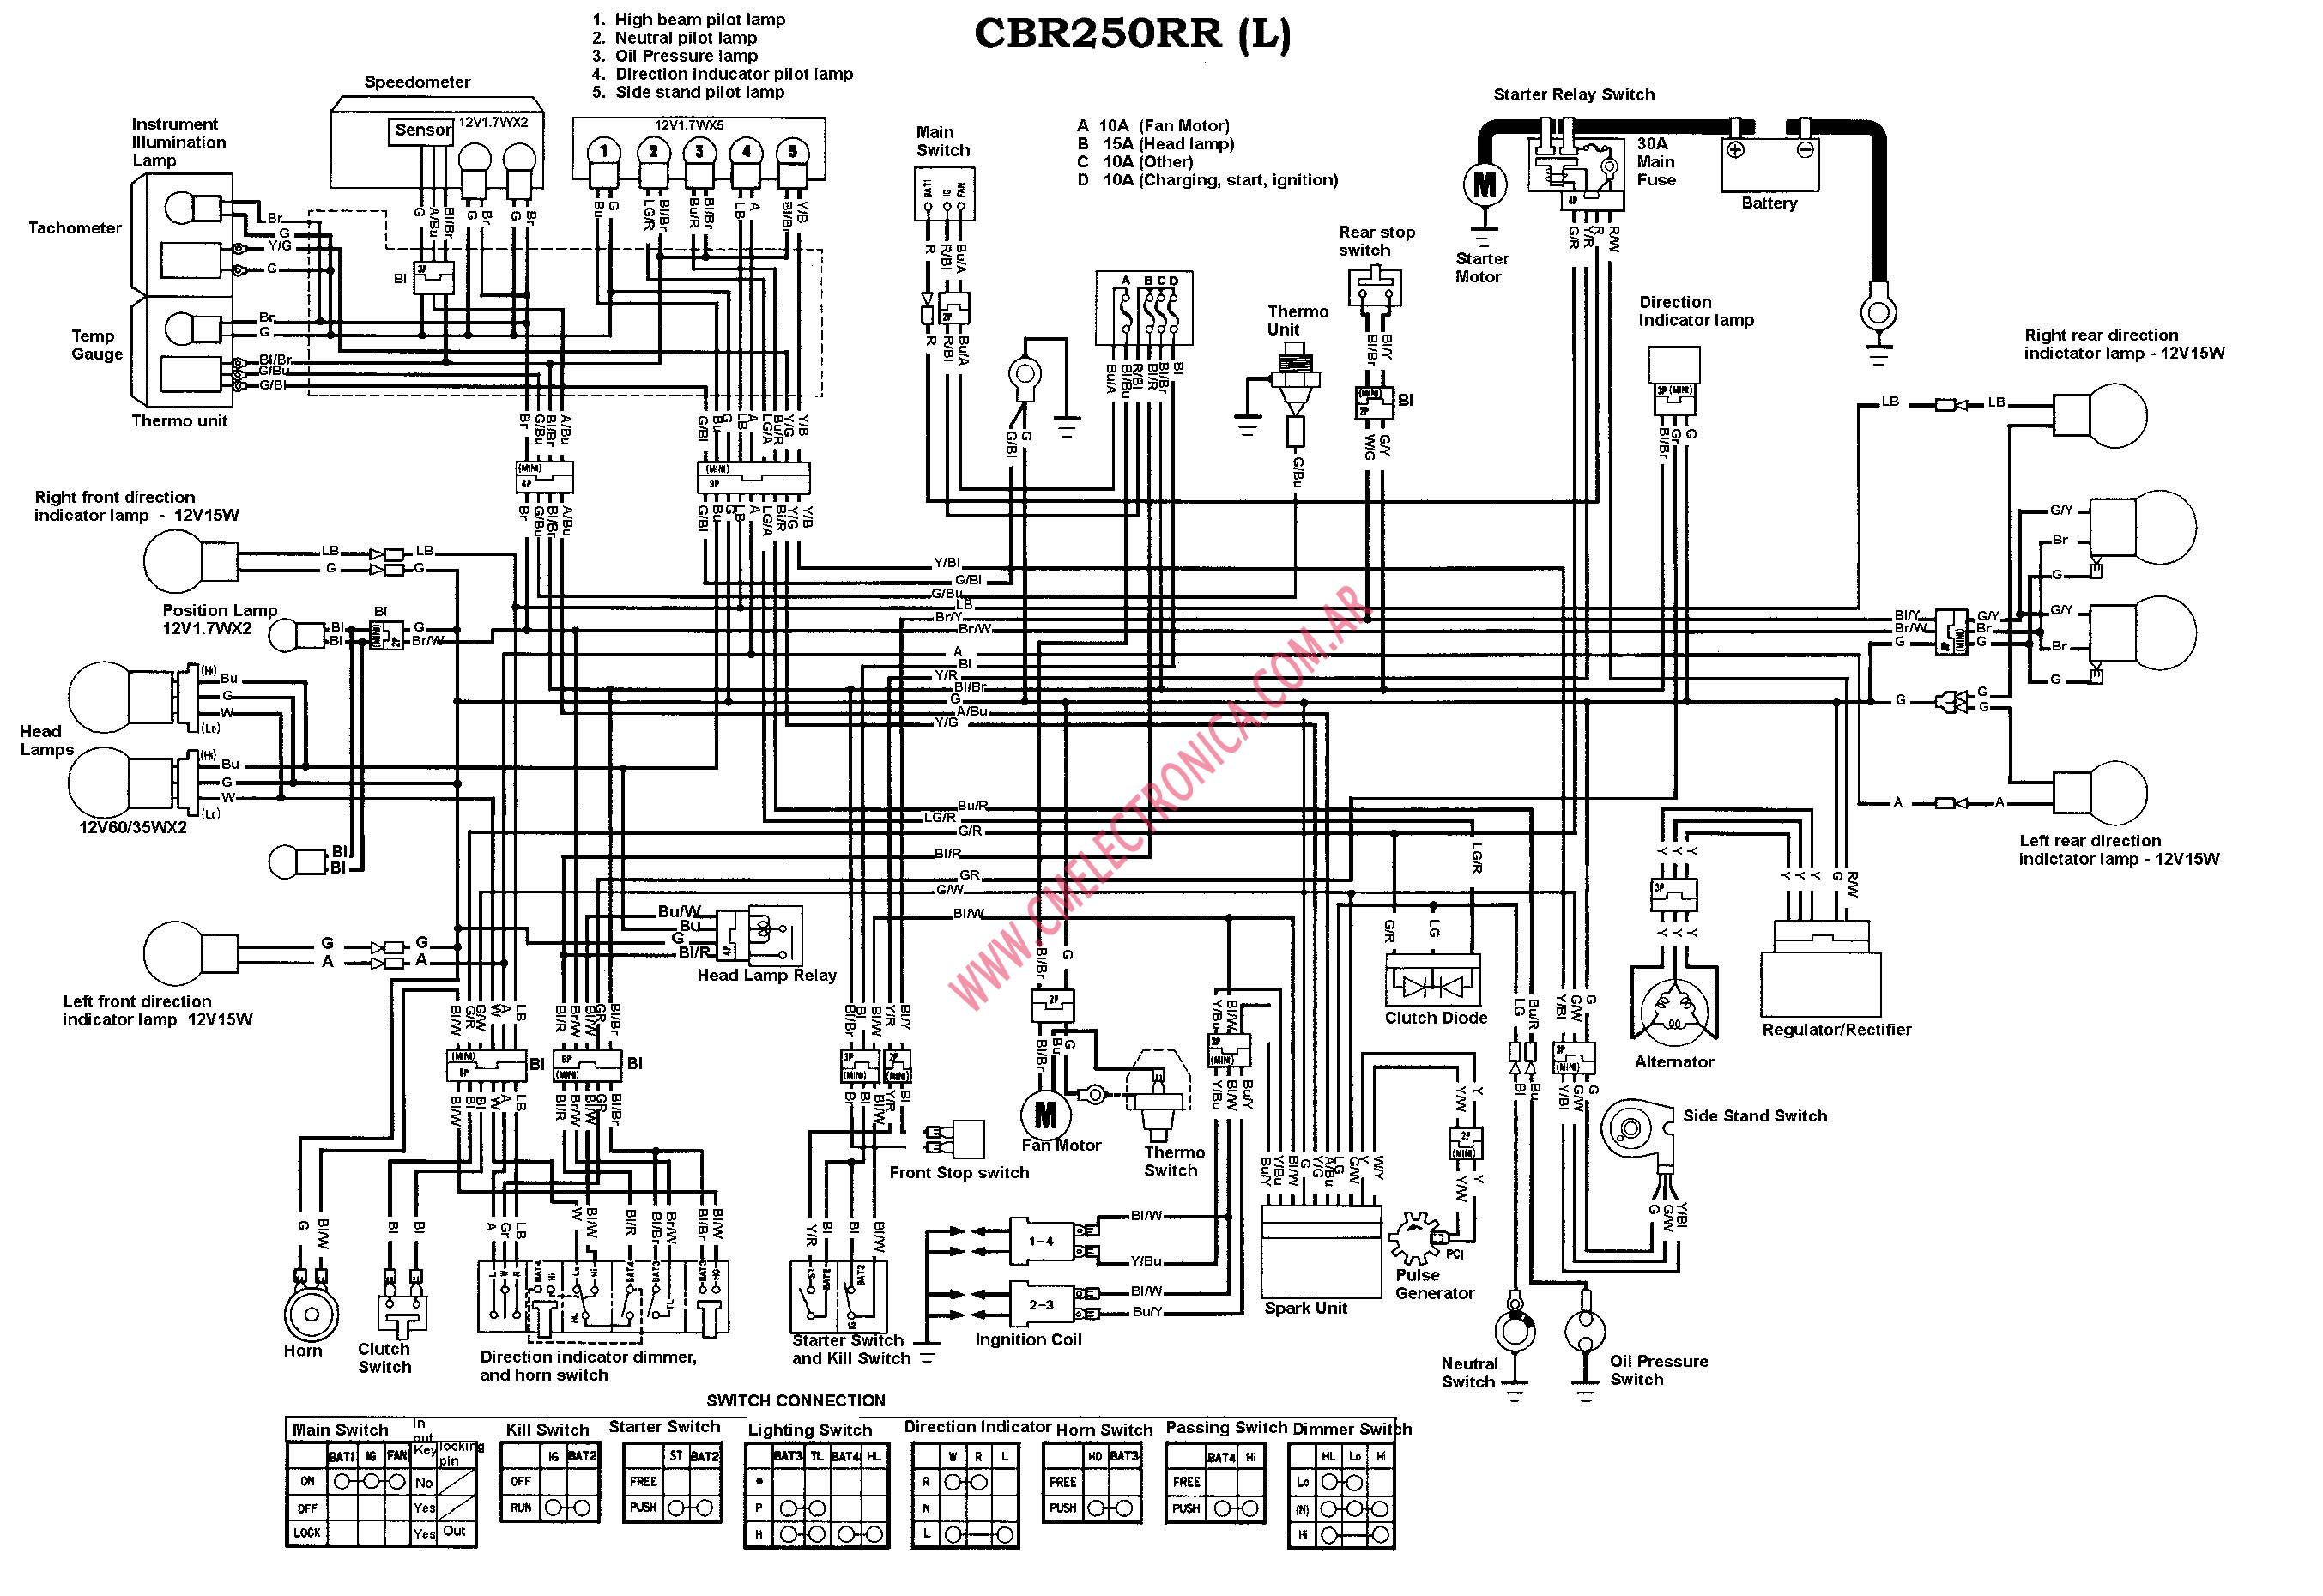 honda-cbr250rrl Honda Cbr R Wiring Diagram on